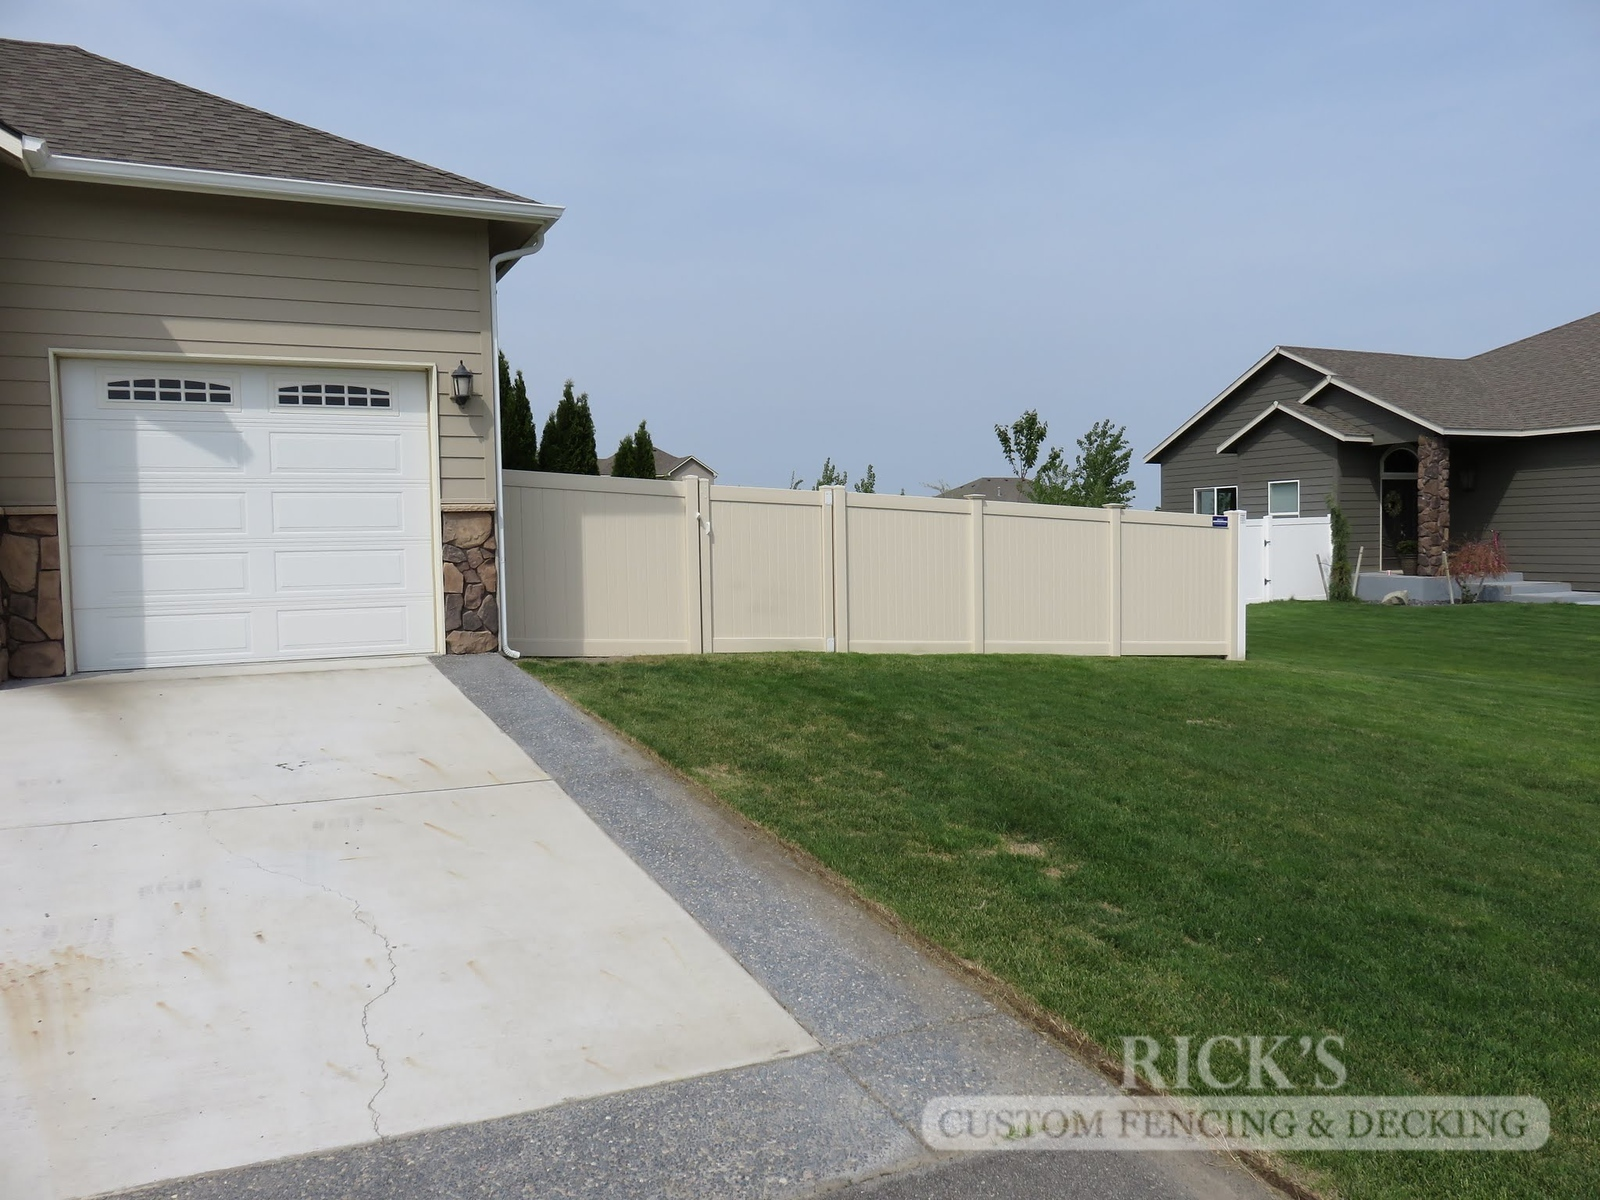 3015 - Vinyl Privacy Fencing